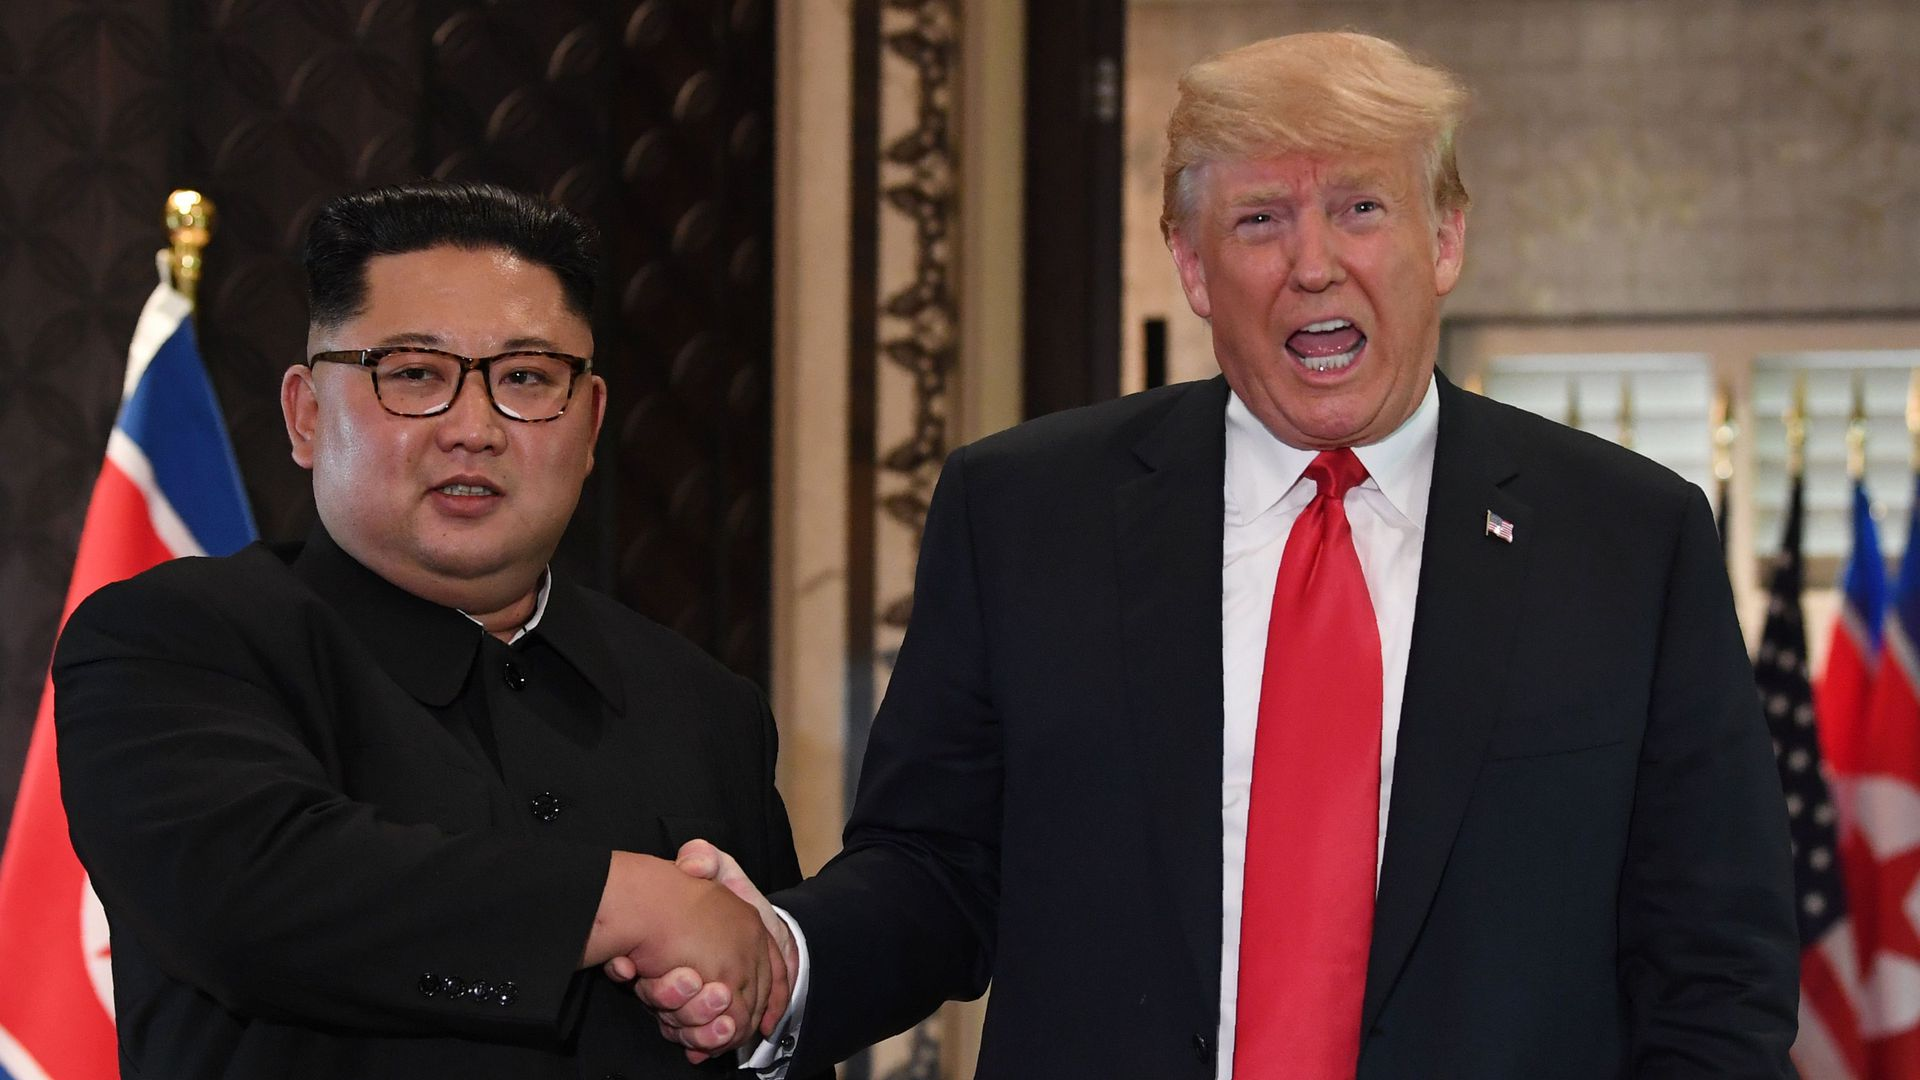 Trump and Kim shake hands